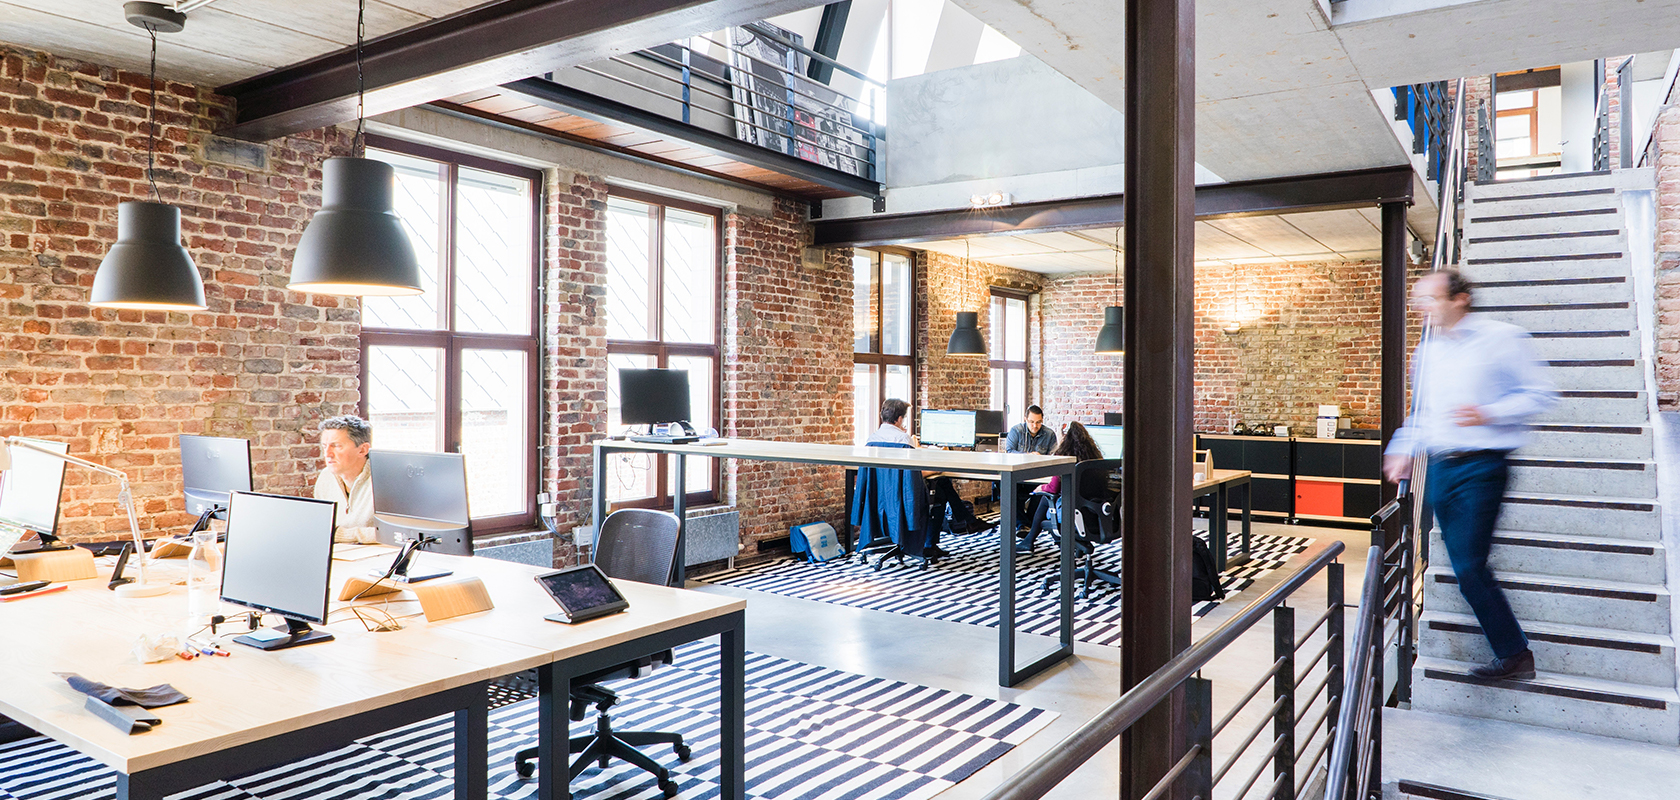 Image of open plan socially distanced office